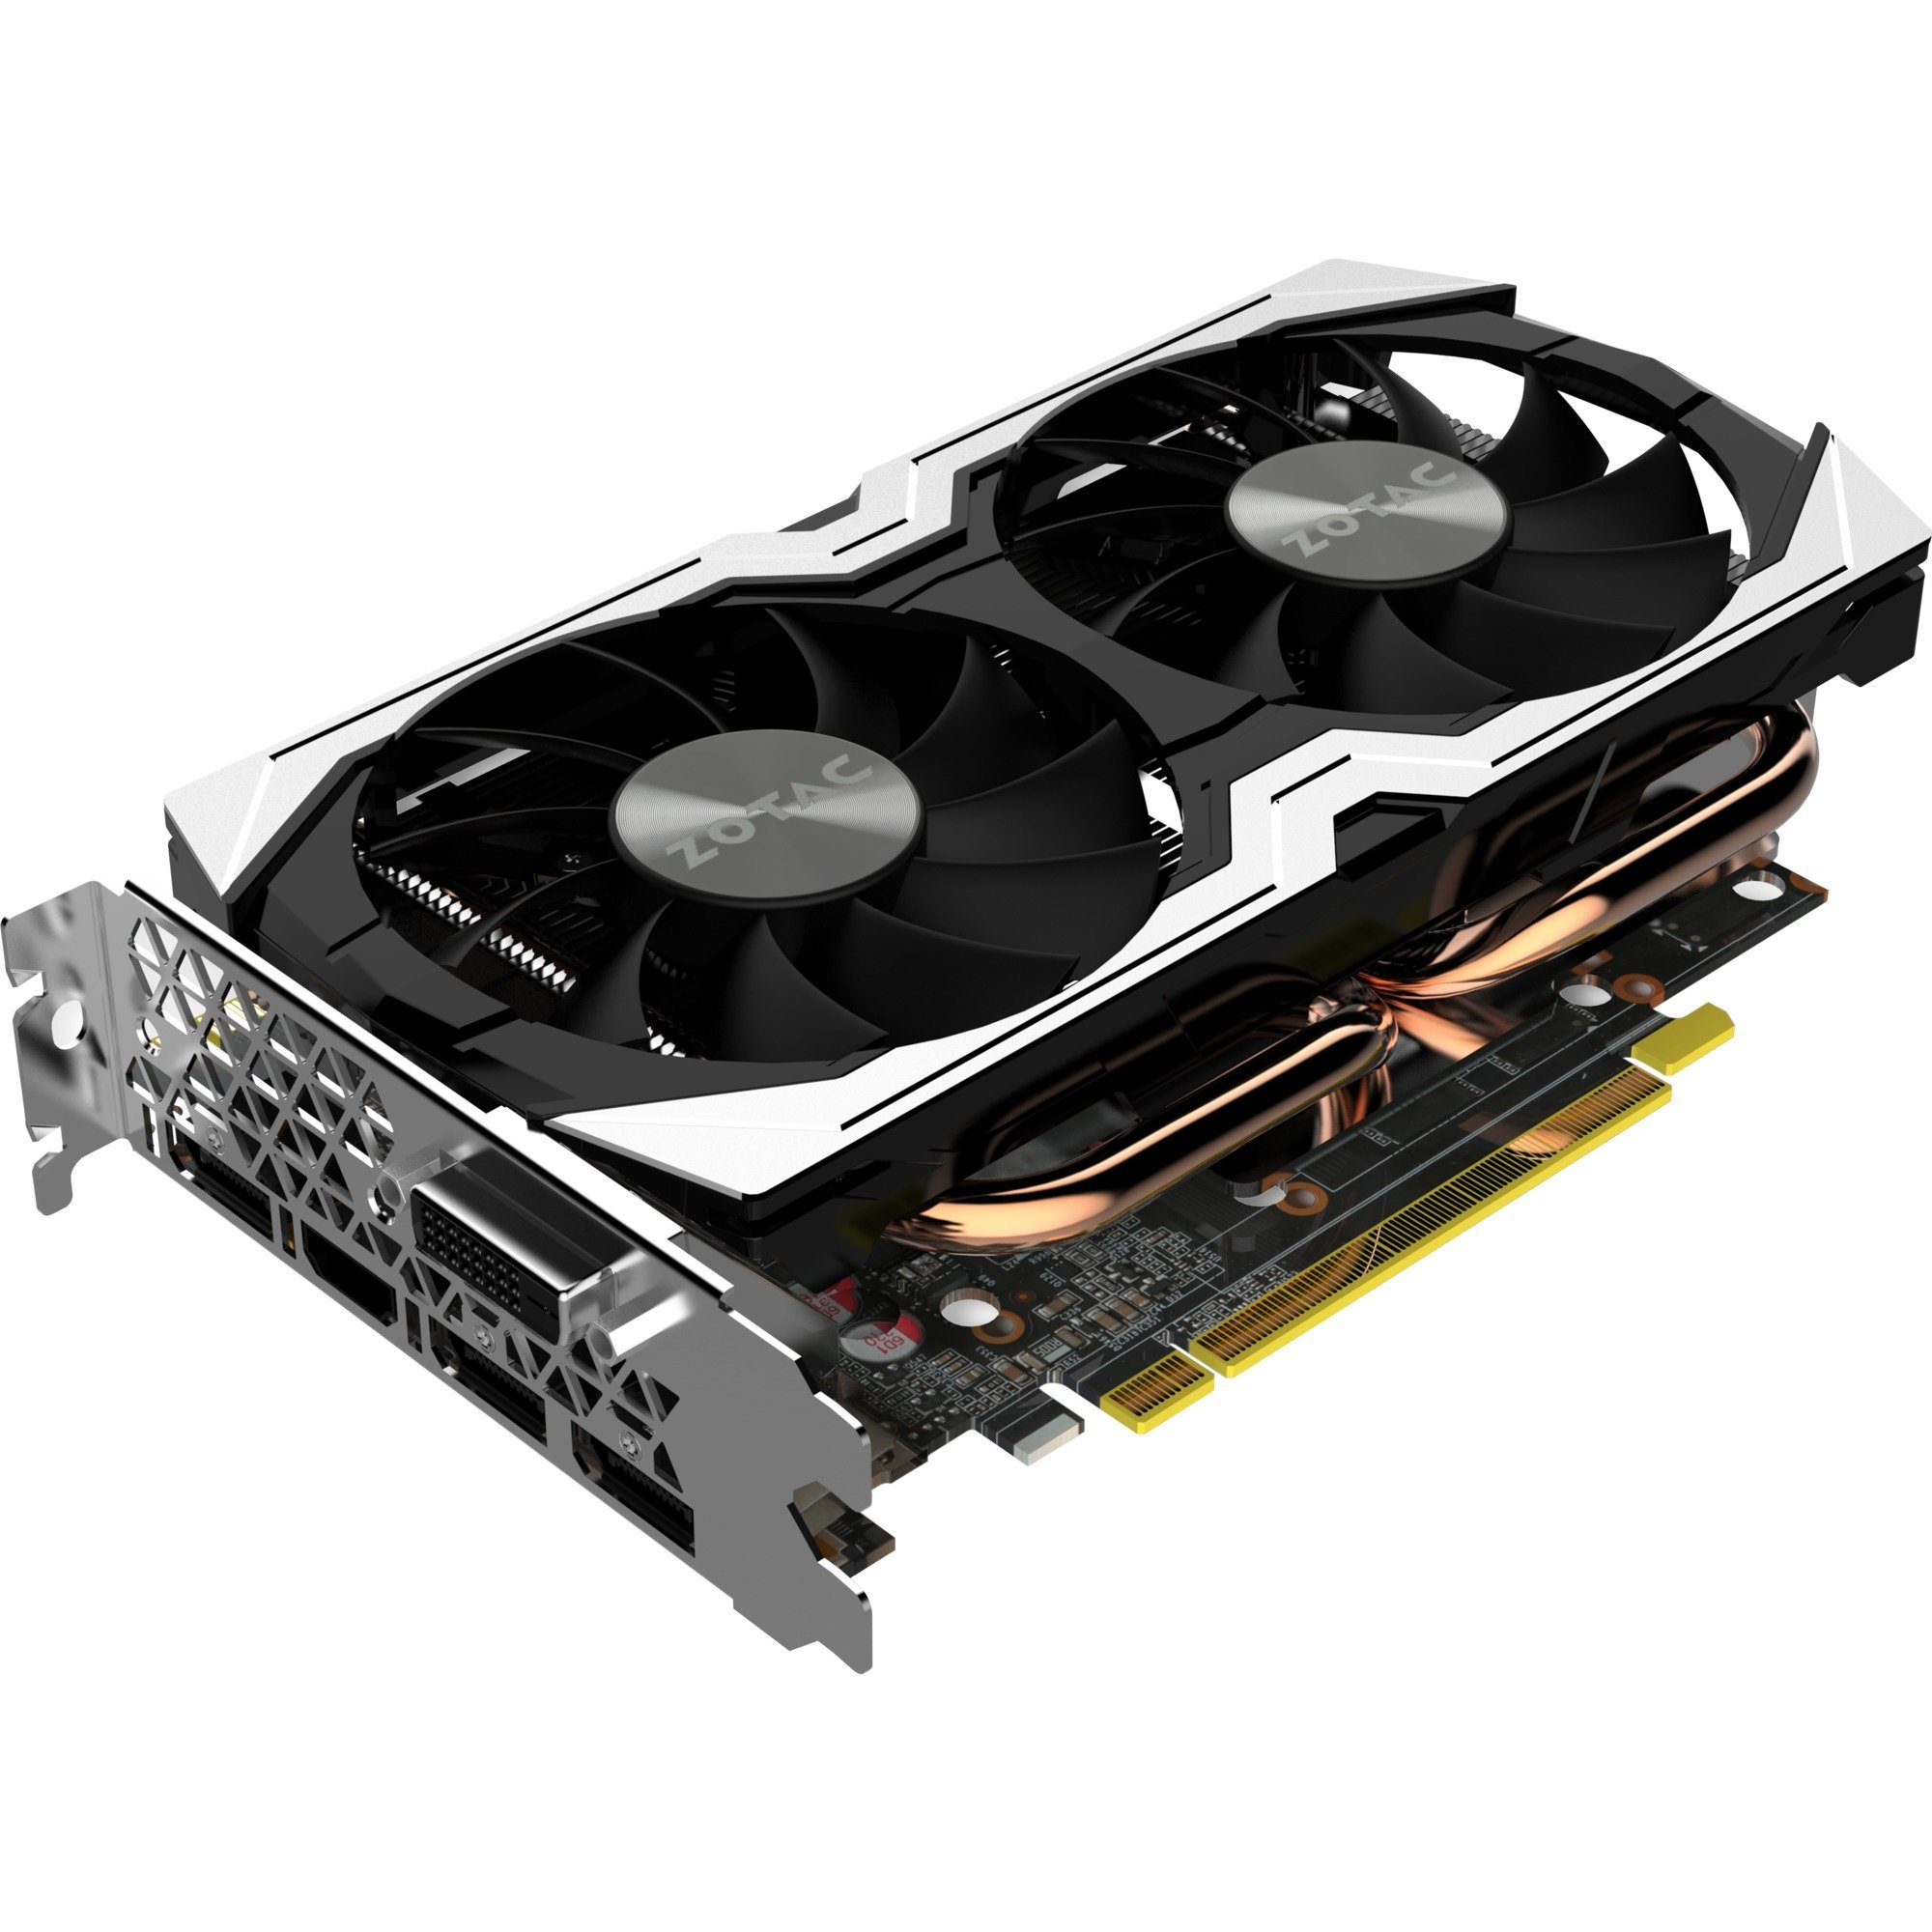 ZOTAC Grafikkarte »GeForce GTX 1070 Mini«